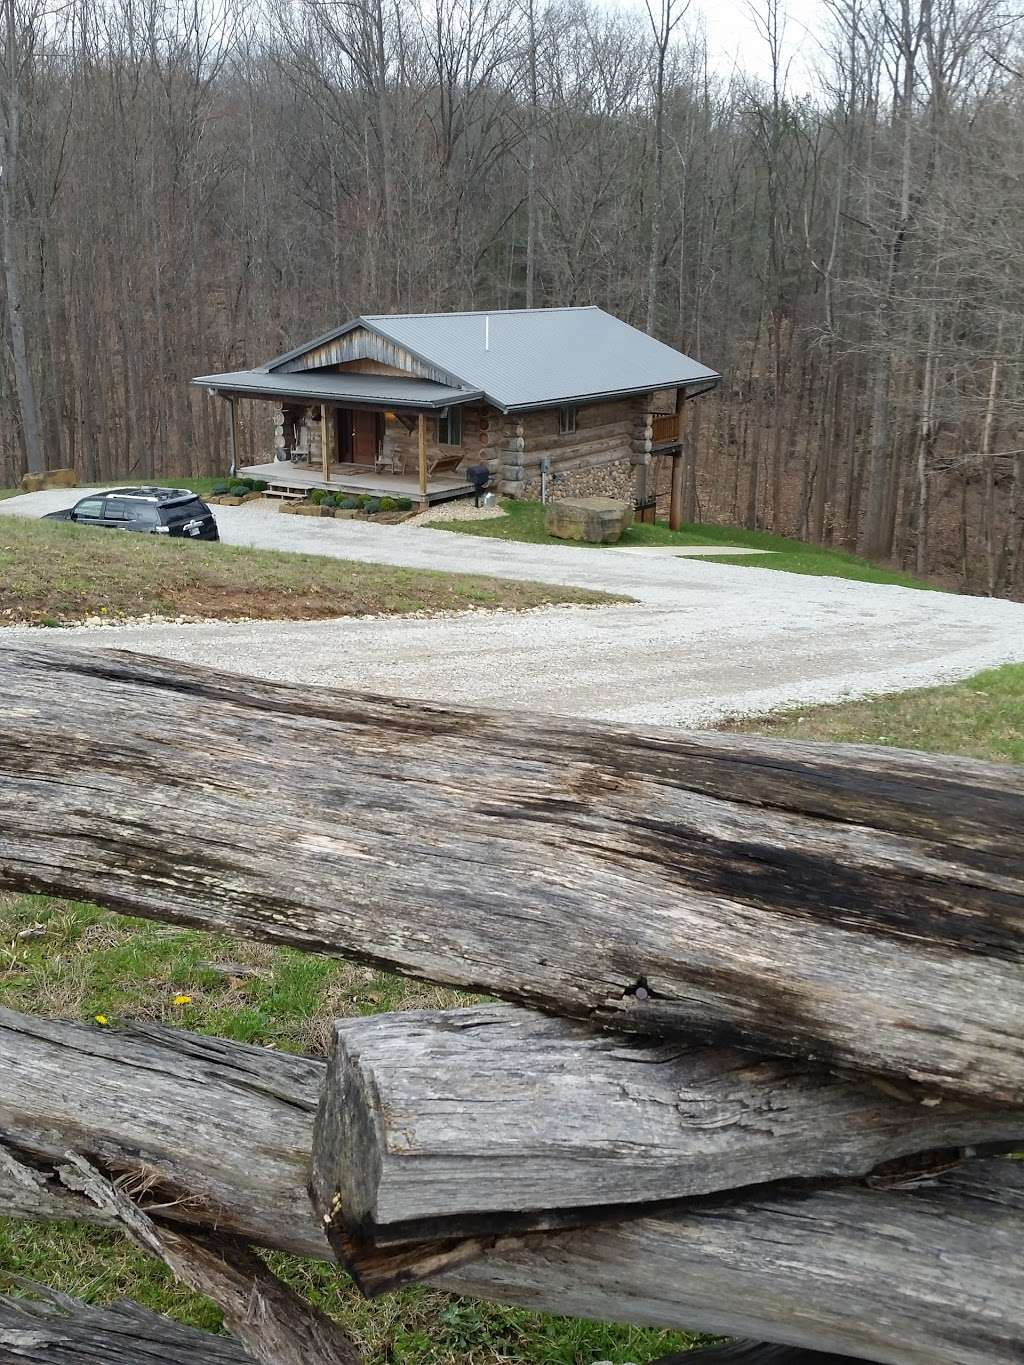 Antler Log Cabins - real estate agency    Photo 6 of 10   Address: 8747 E State Rd 45, Unionville, IN 47468, USA   Phone: (812) 339-6547